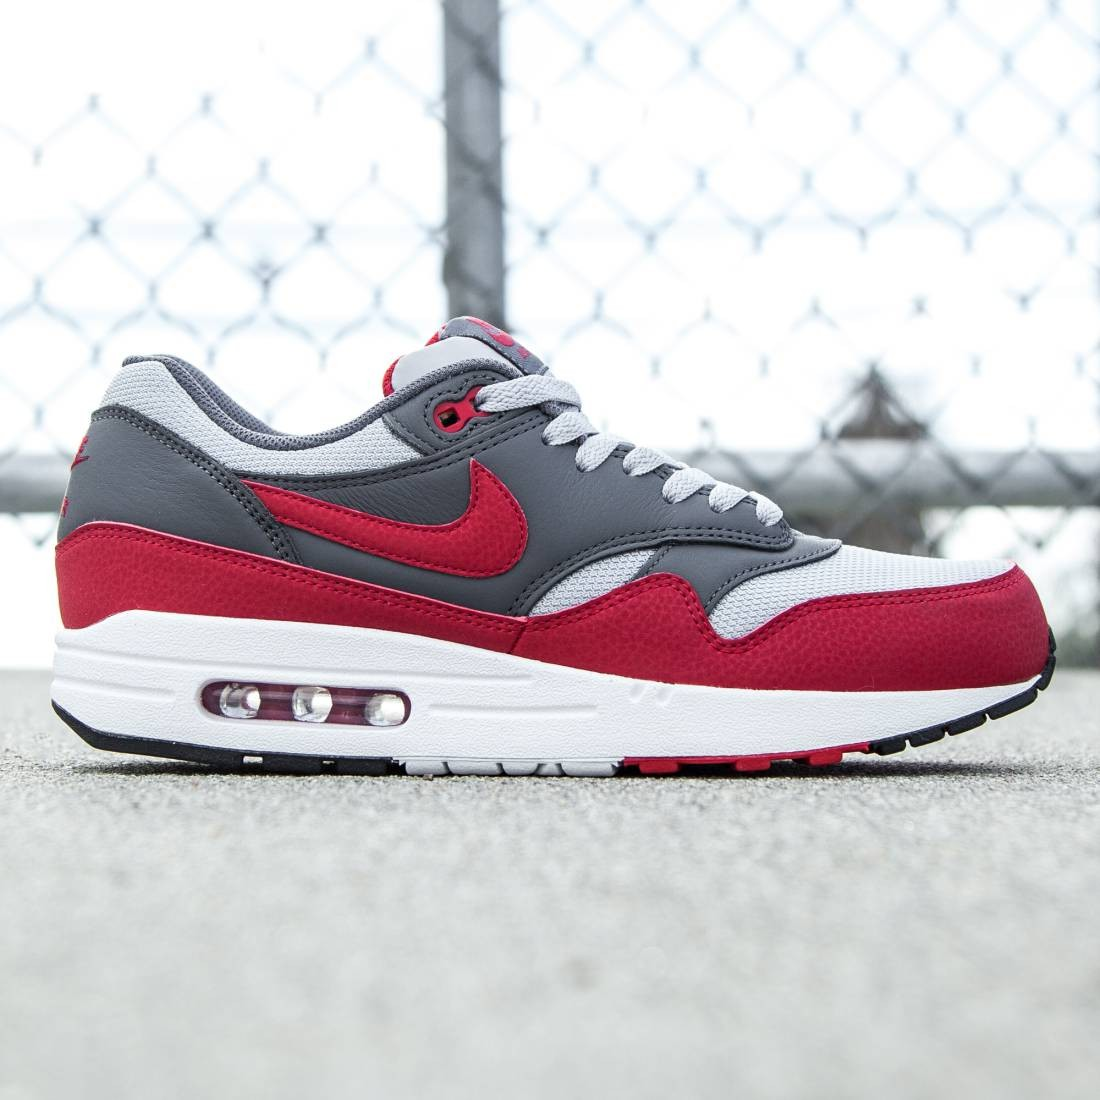 air max 1 classic red off 52% trinovo.se